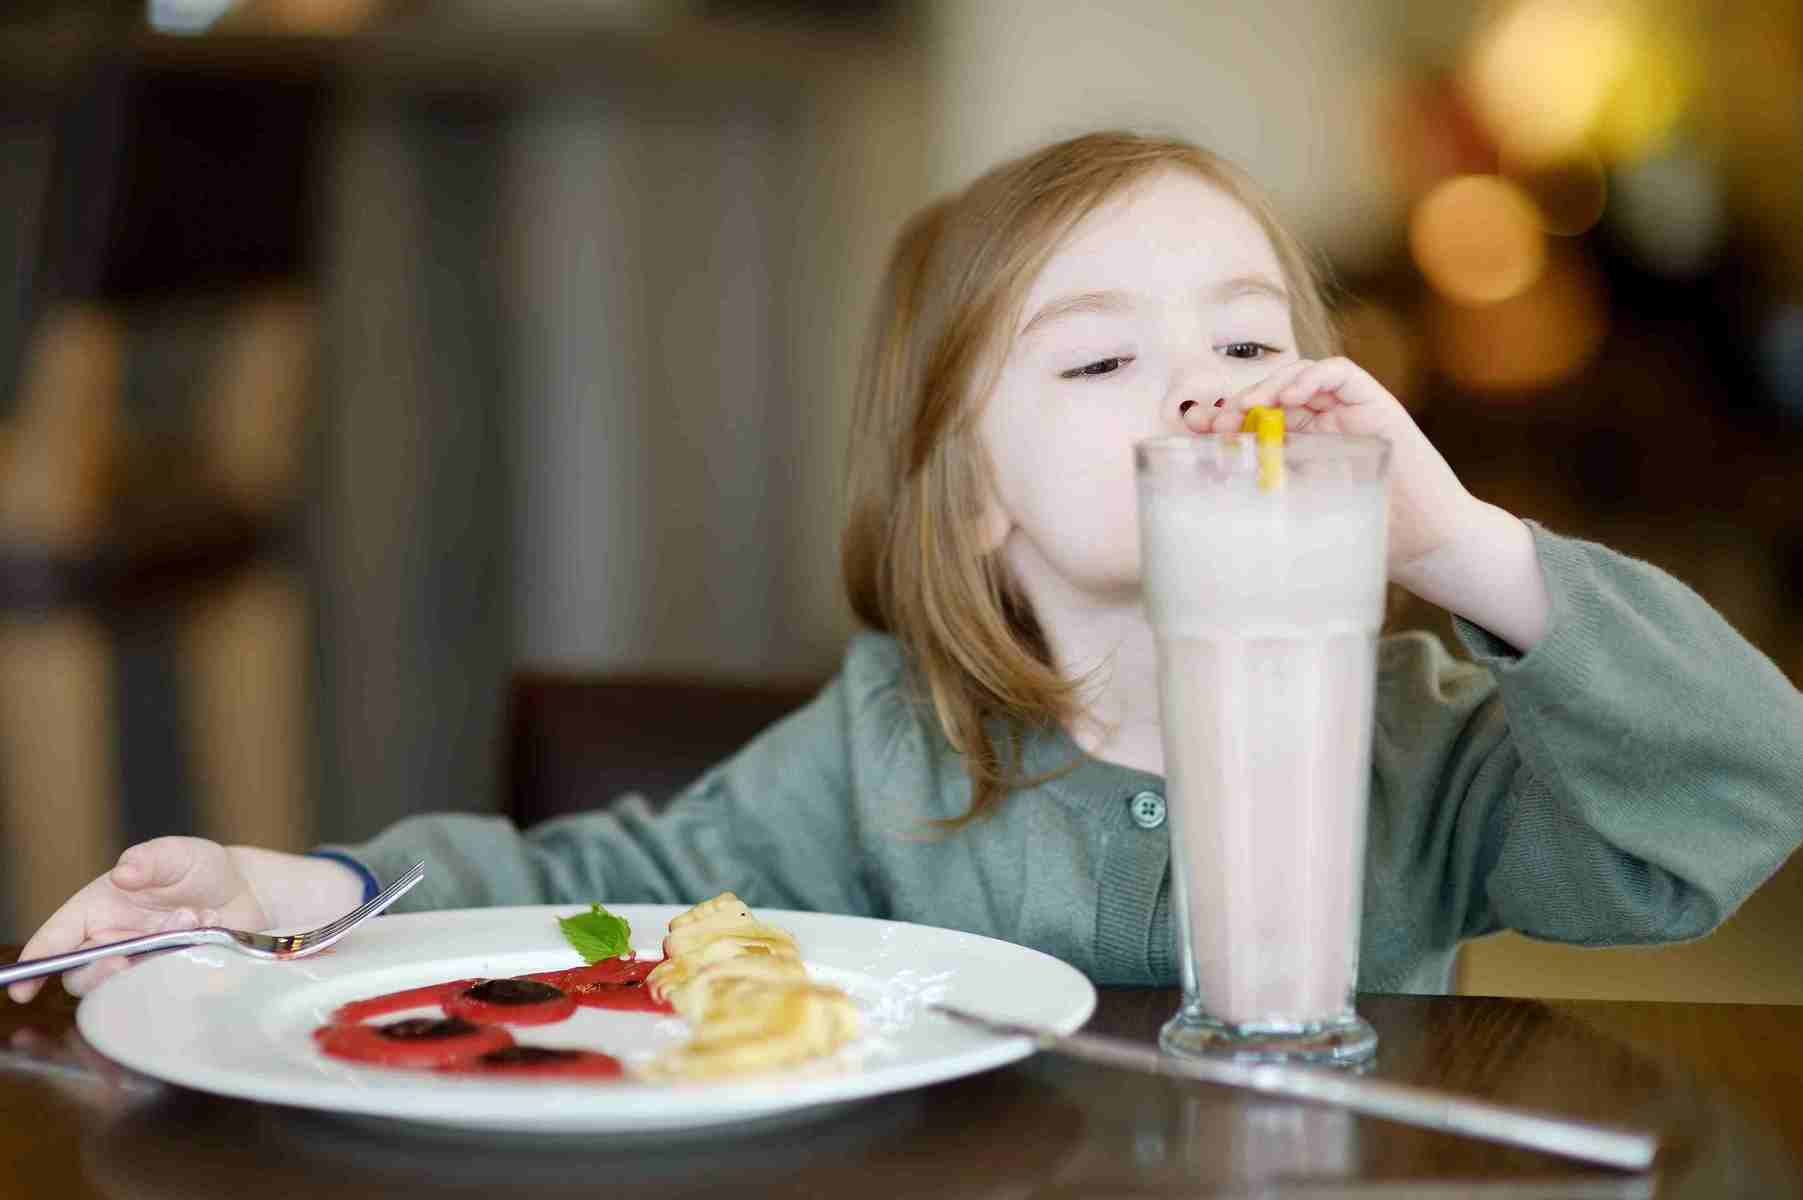 Article: Toronto's Best Brunch Spots for Kids and Families